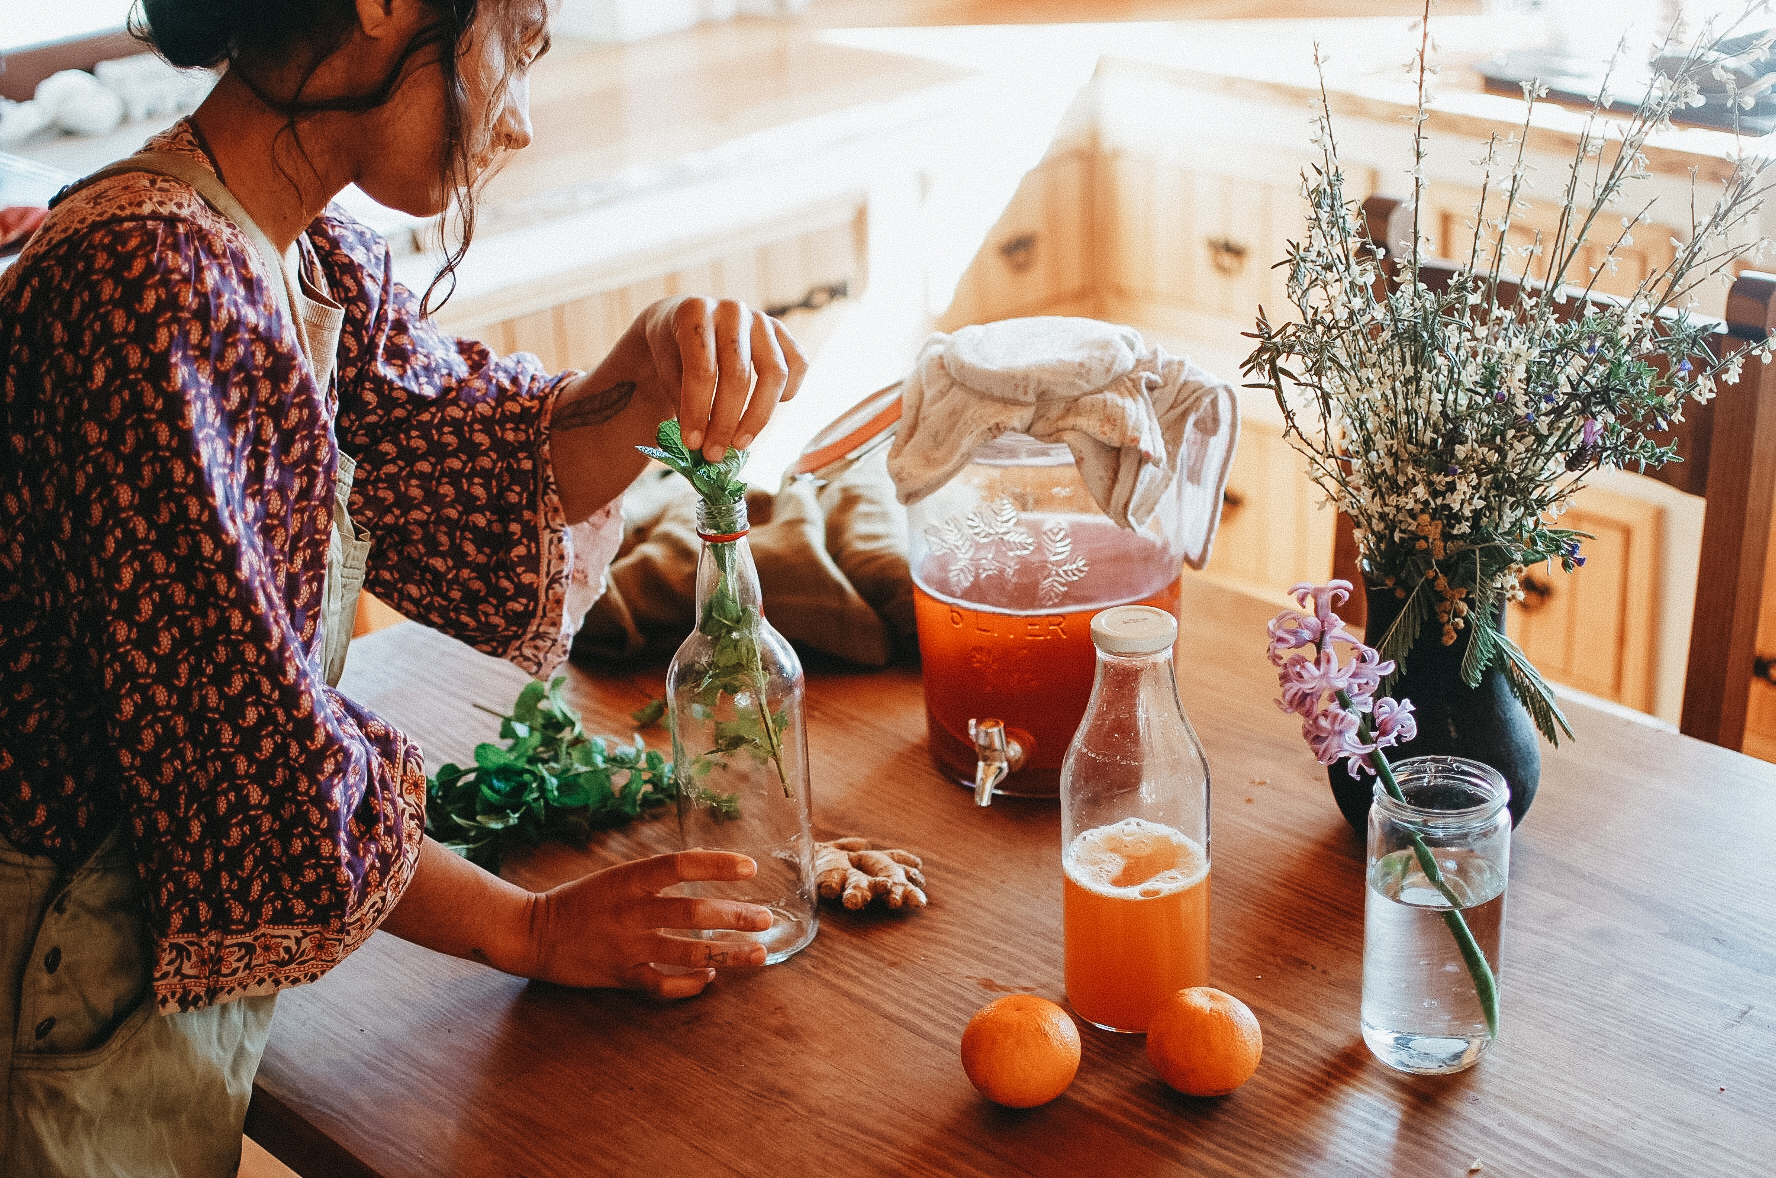 Making Herbal Kombucha, mead, and beer – The Craft of Herbal Fermentation Course